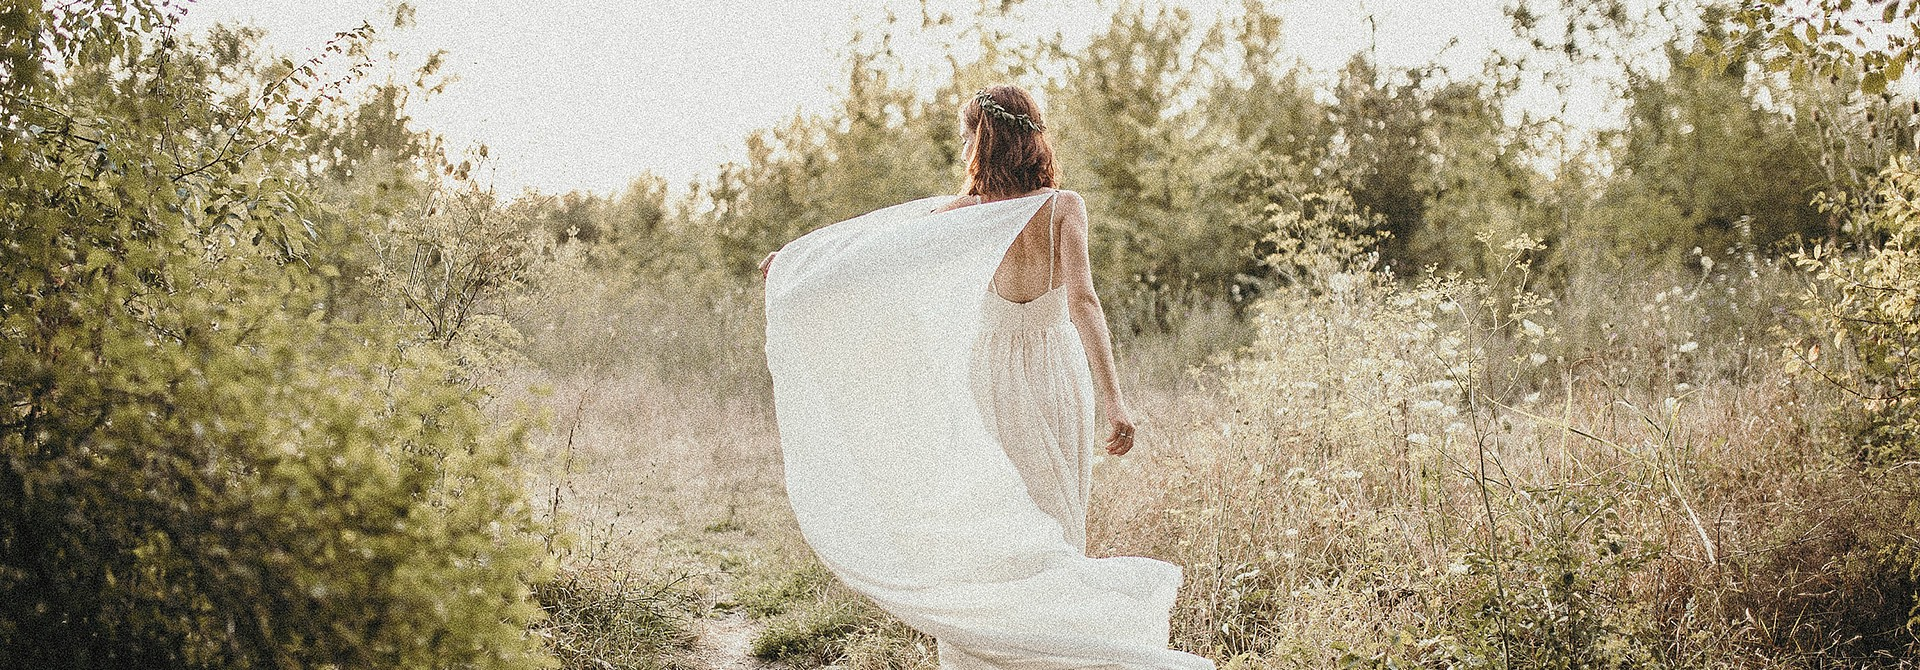 beauty shot of womans wedding dress